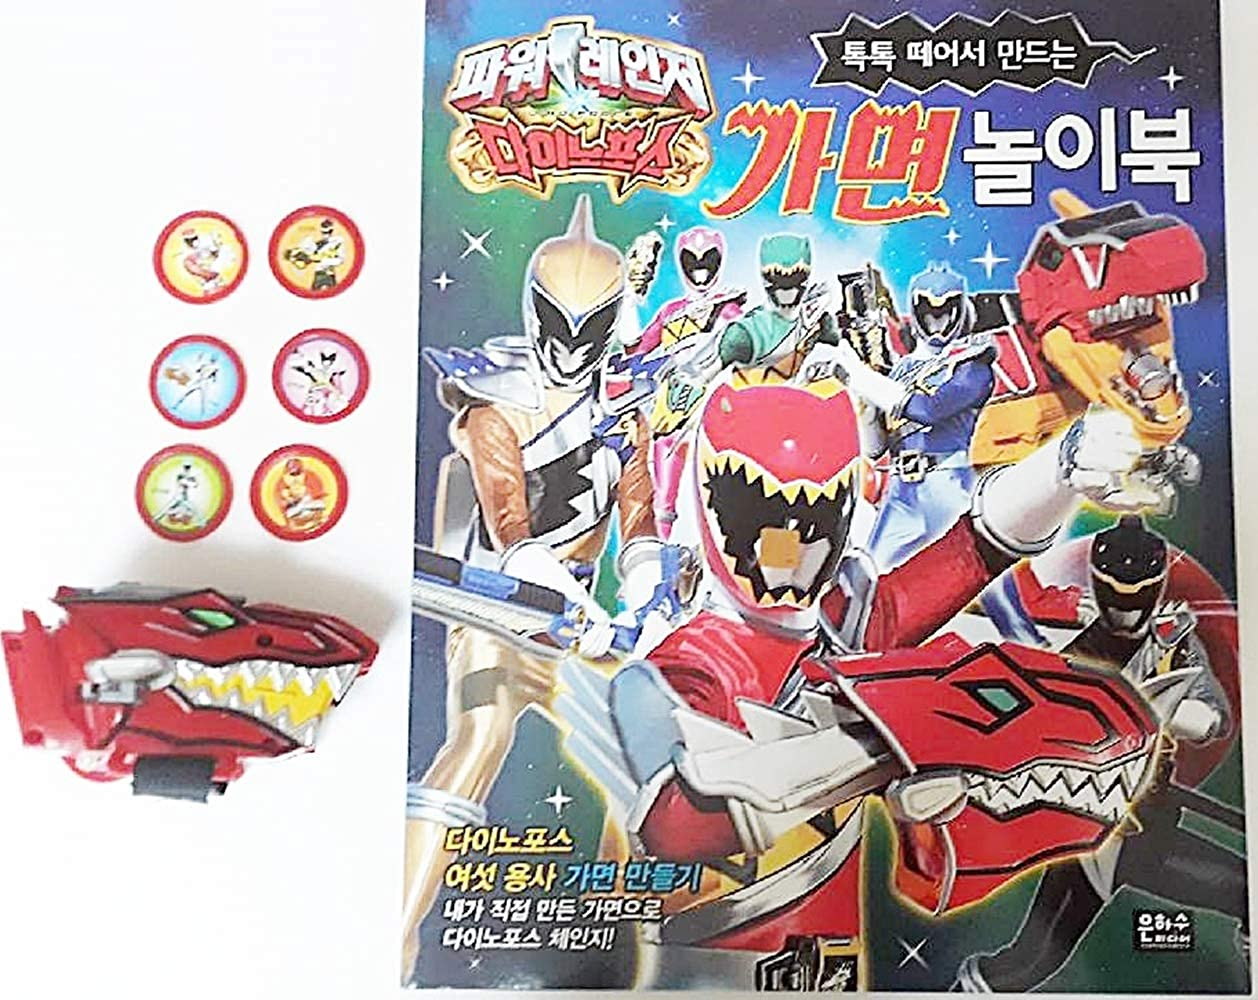 Power Rangers Dino Charge MakingマスクマスクColoring Book withボーナスT - Rex Disc Shooter   B079BGQ3WK